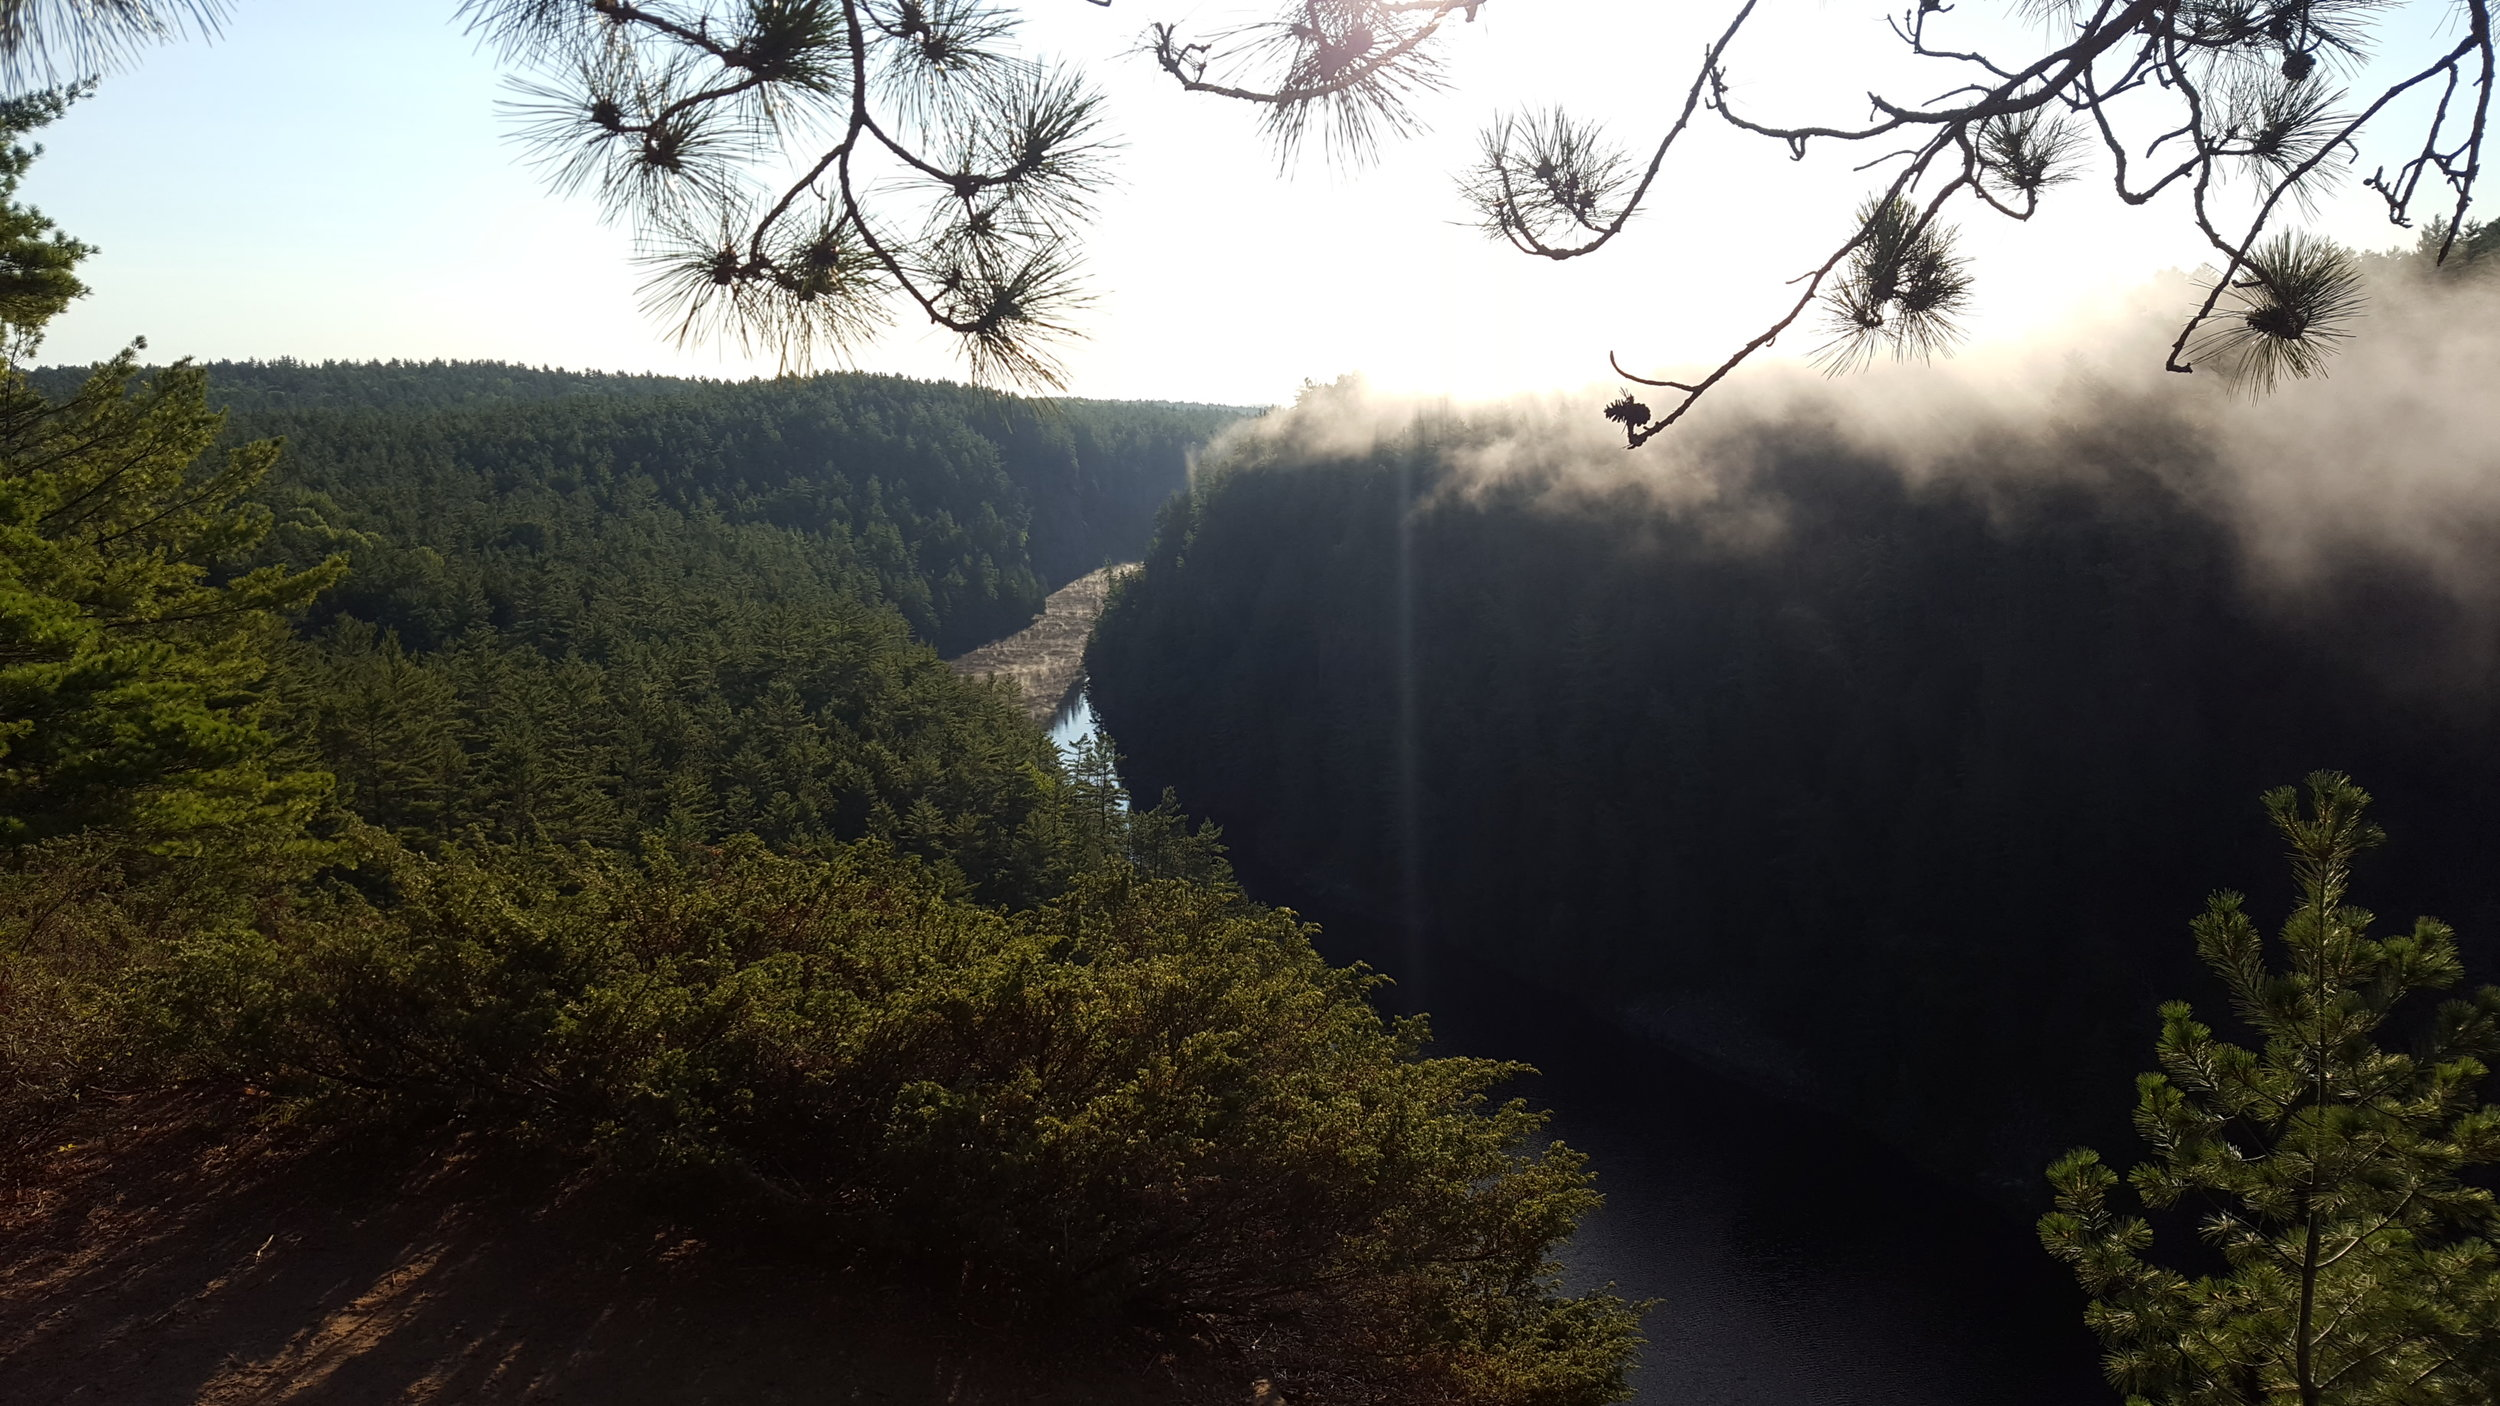 View from the top of the Barron Canyon - Algonquin Park (On the Barron Canyon Trail)